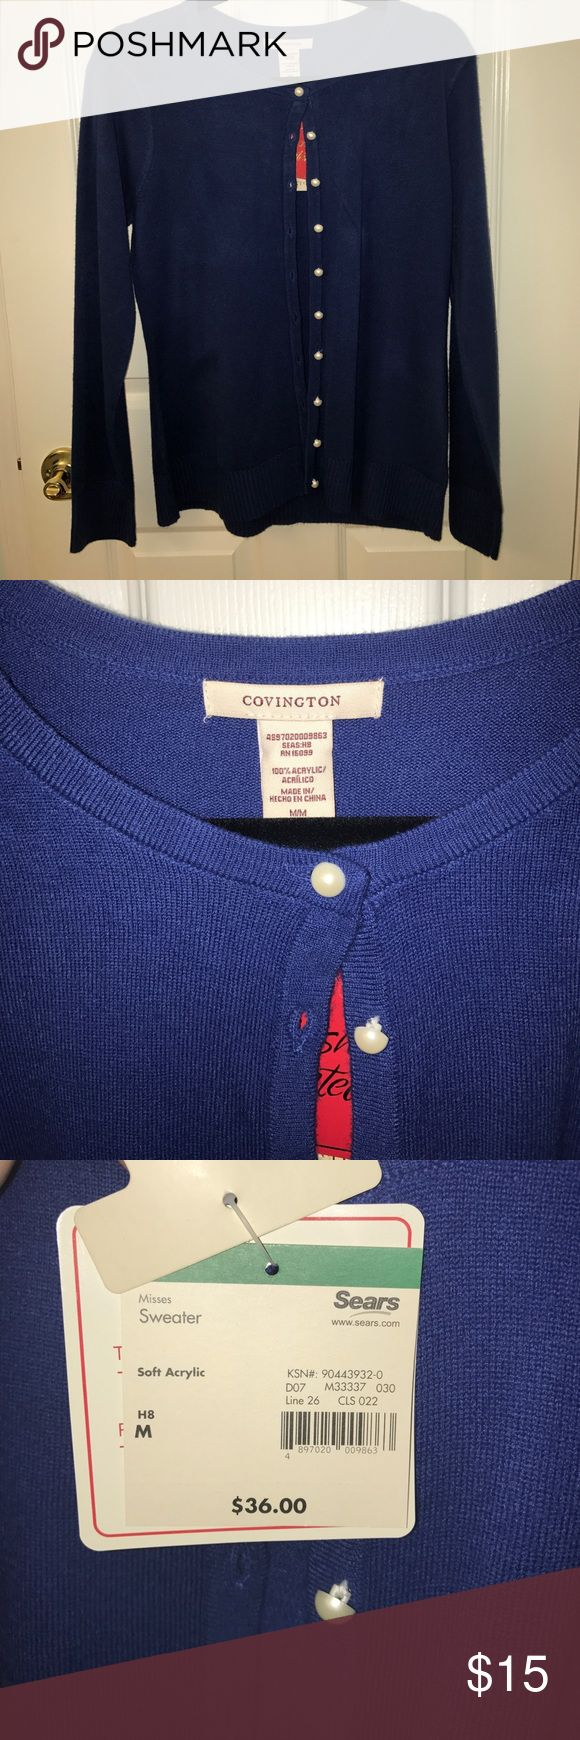 Royal blue cardigan pearl buttons - medium Royal blue cardigan pearl buttons - medium - Covington brand from sears (middle two pictures are most accurate representation of color) Covington Sweaters Cardigans